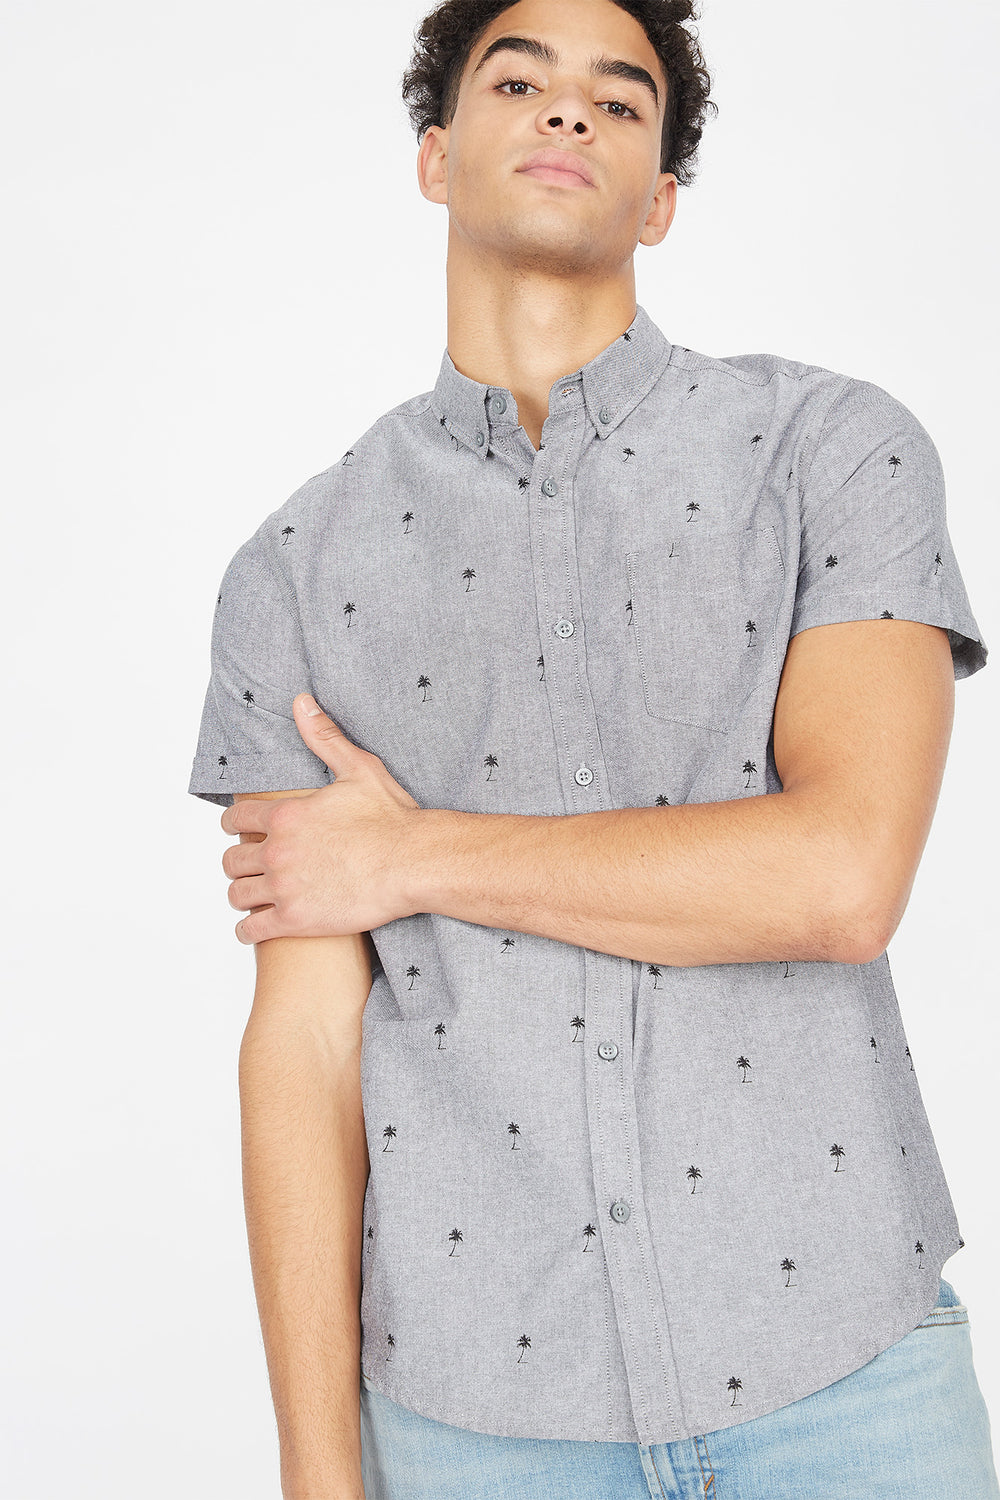 Palm Tree Ditsy Printed Button-Up Oxford Short Sleeve Top Heather Grey